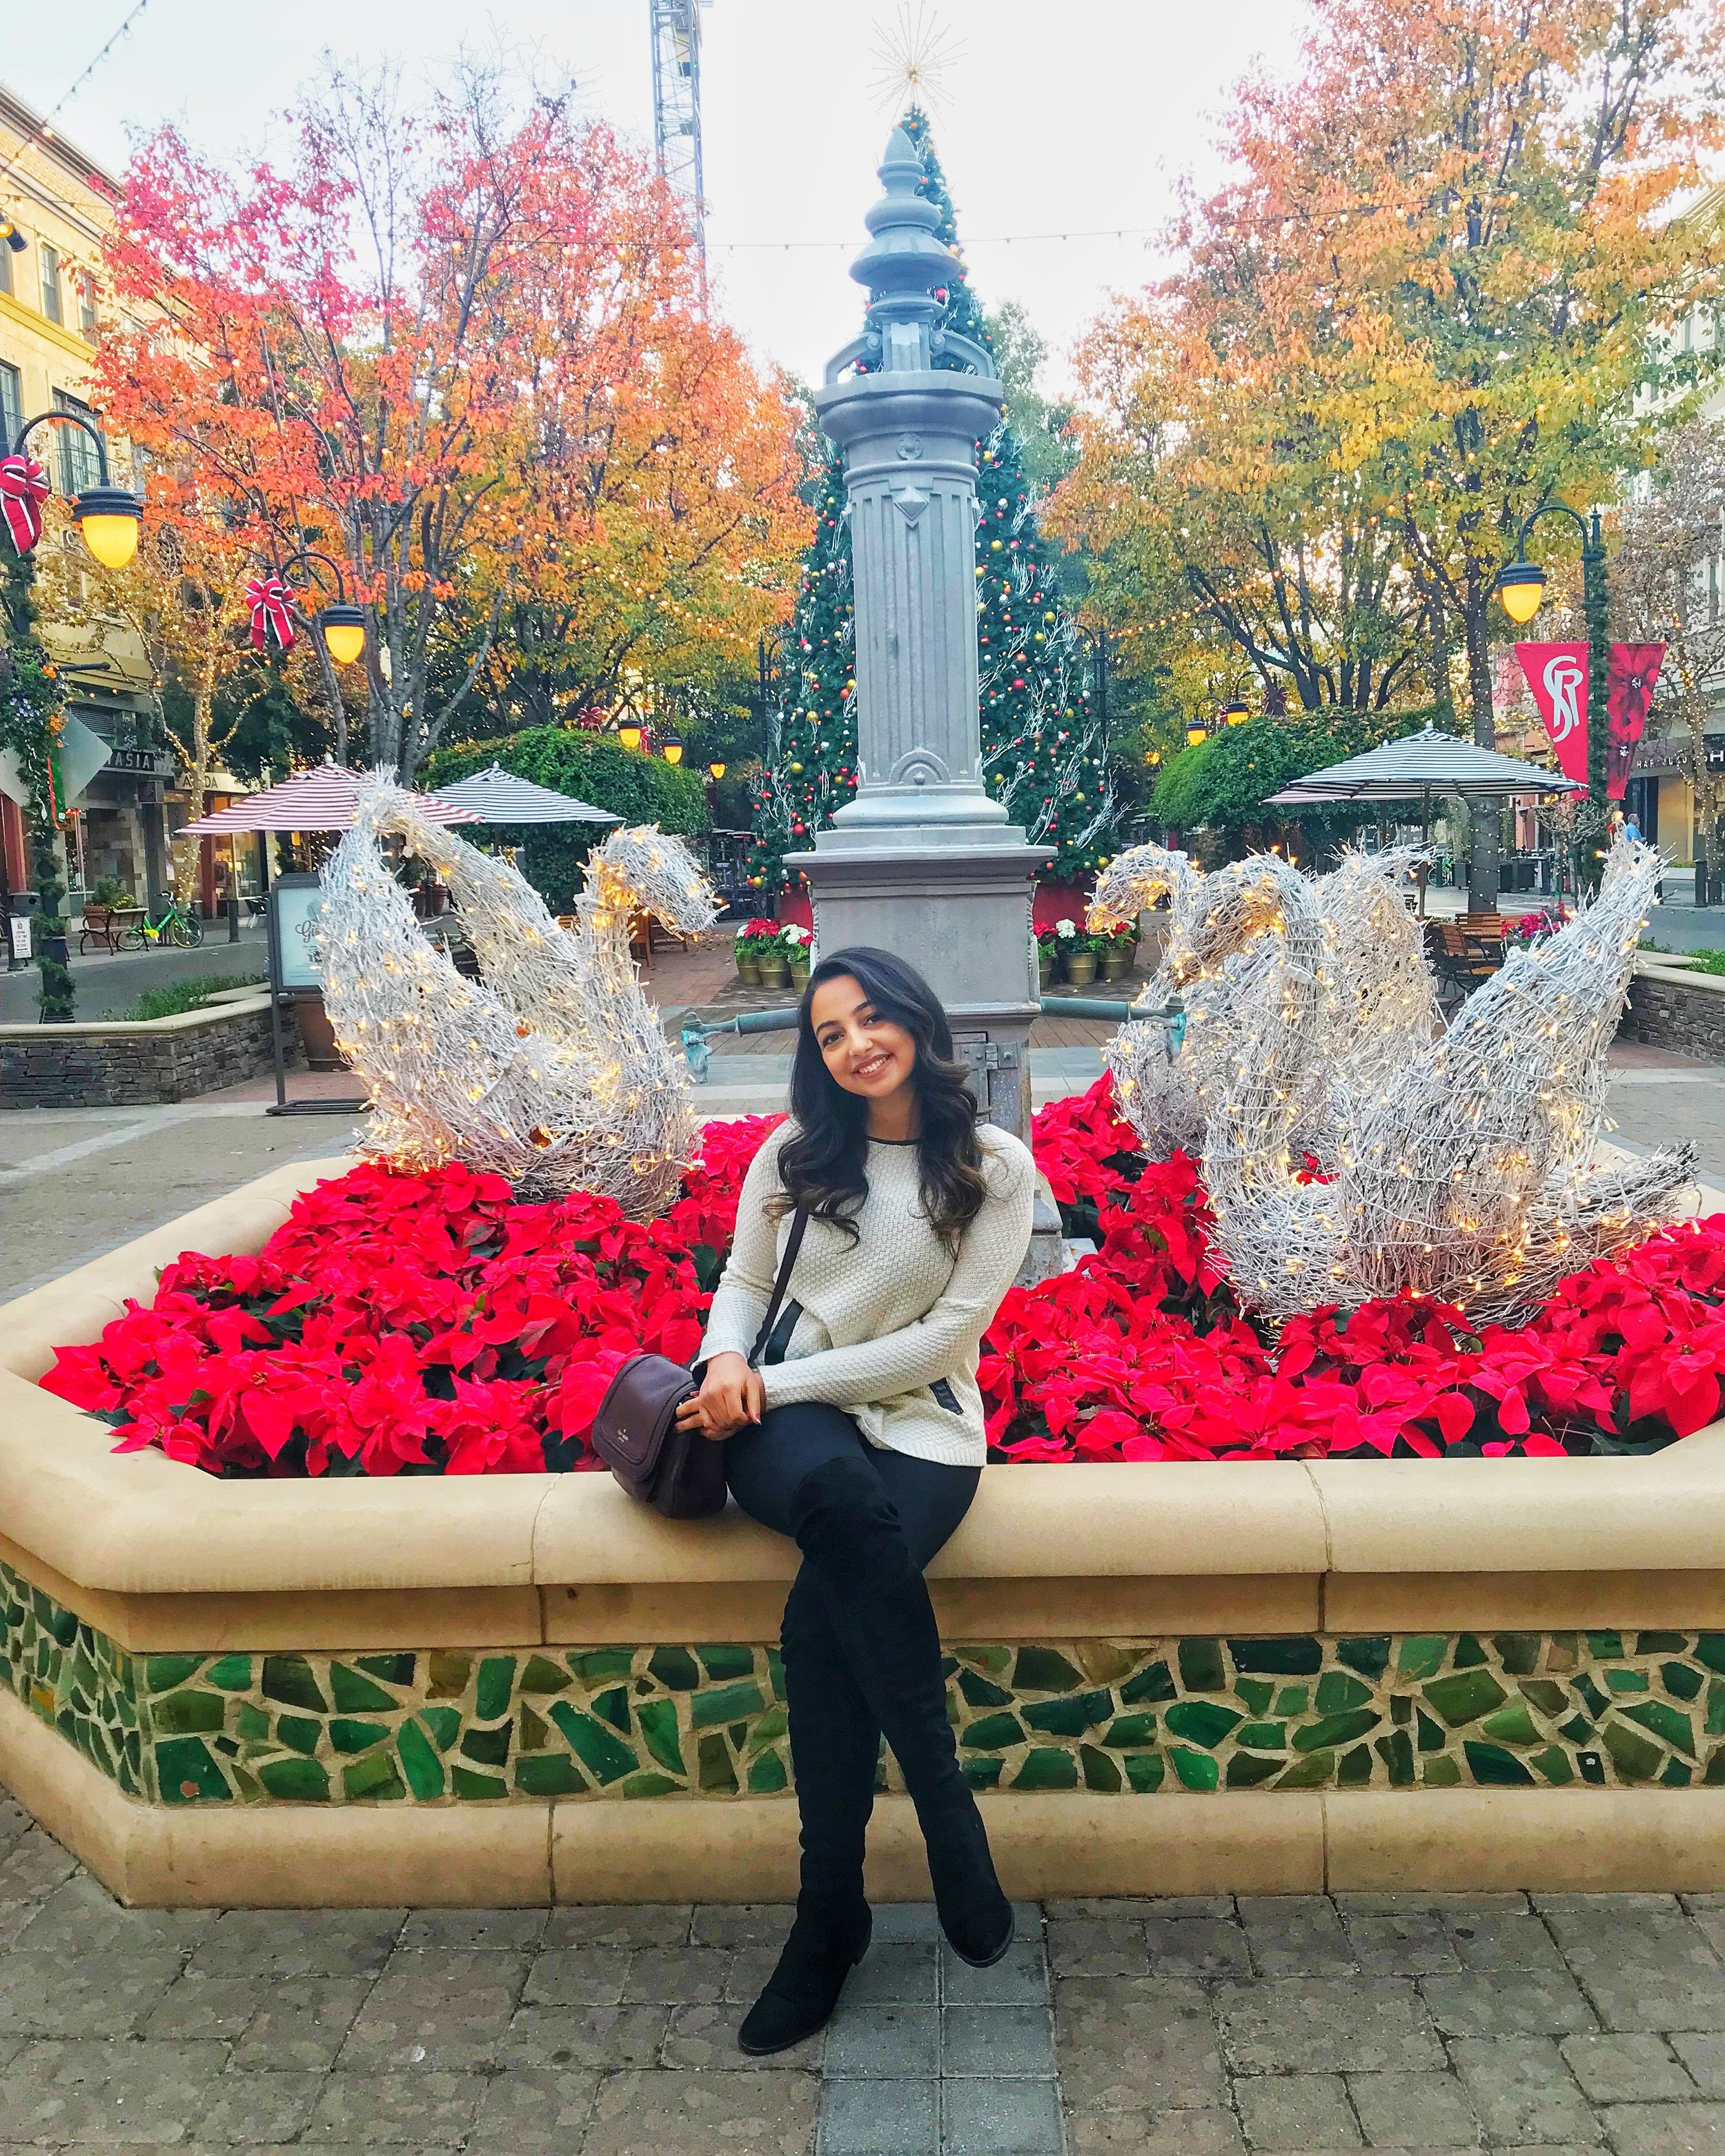 - Hi and Welcome to my Blog! I'm a 22 year old UC Davis Alumni and currently work as a Technical Consultant at Workday! I have been a dancer since I was five years old, and even performed at the 2017 International Indian Film Awards (IIFA) in New York!As a result I am constantly trying to balance both my passions of dance, entertainment and technology! I love motivating other new graduates to find new opportunities in the workforce or related to their passions so that they can achieve their goals and do all they set their mind to! Feel free to reach out with any advice, questions, or comments about anything related to dance, entertainment, fashion, or technology, I would love to hear from you!Love,Srishti